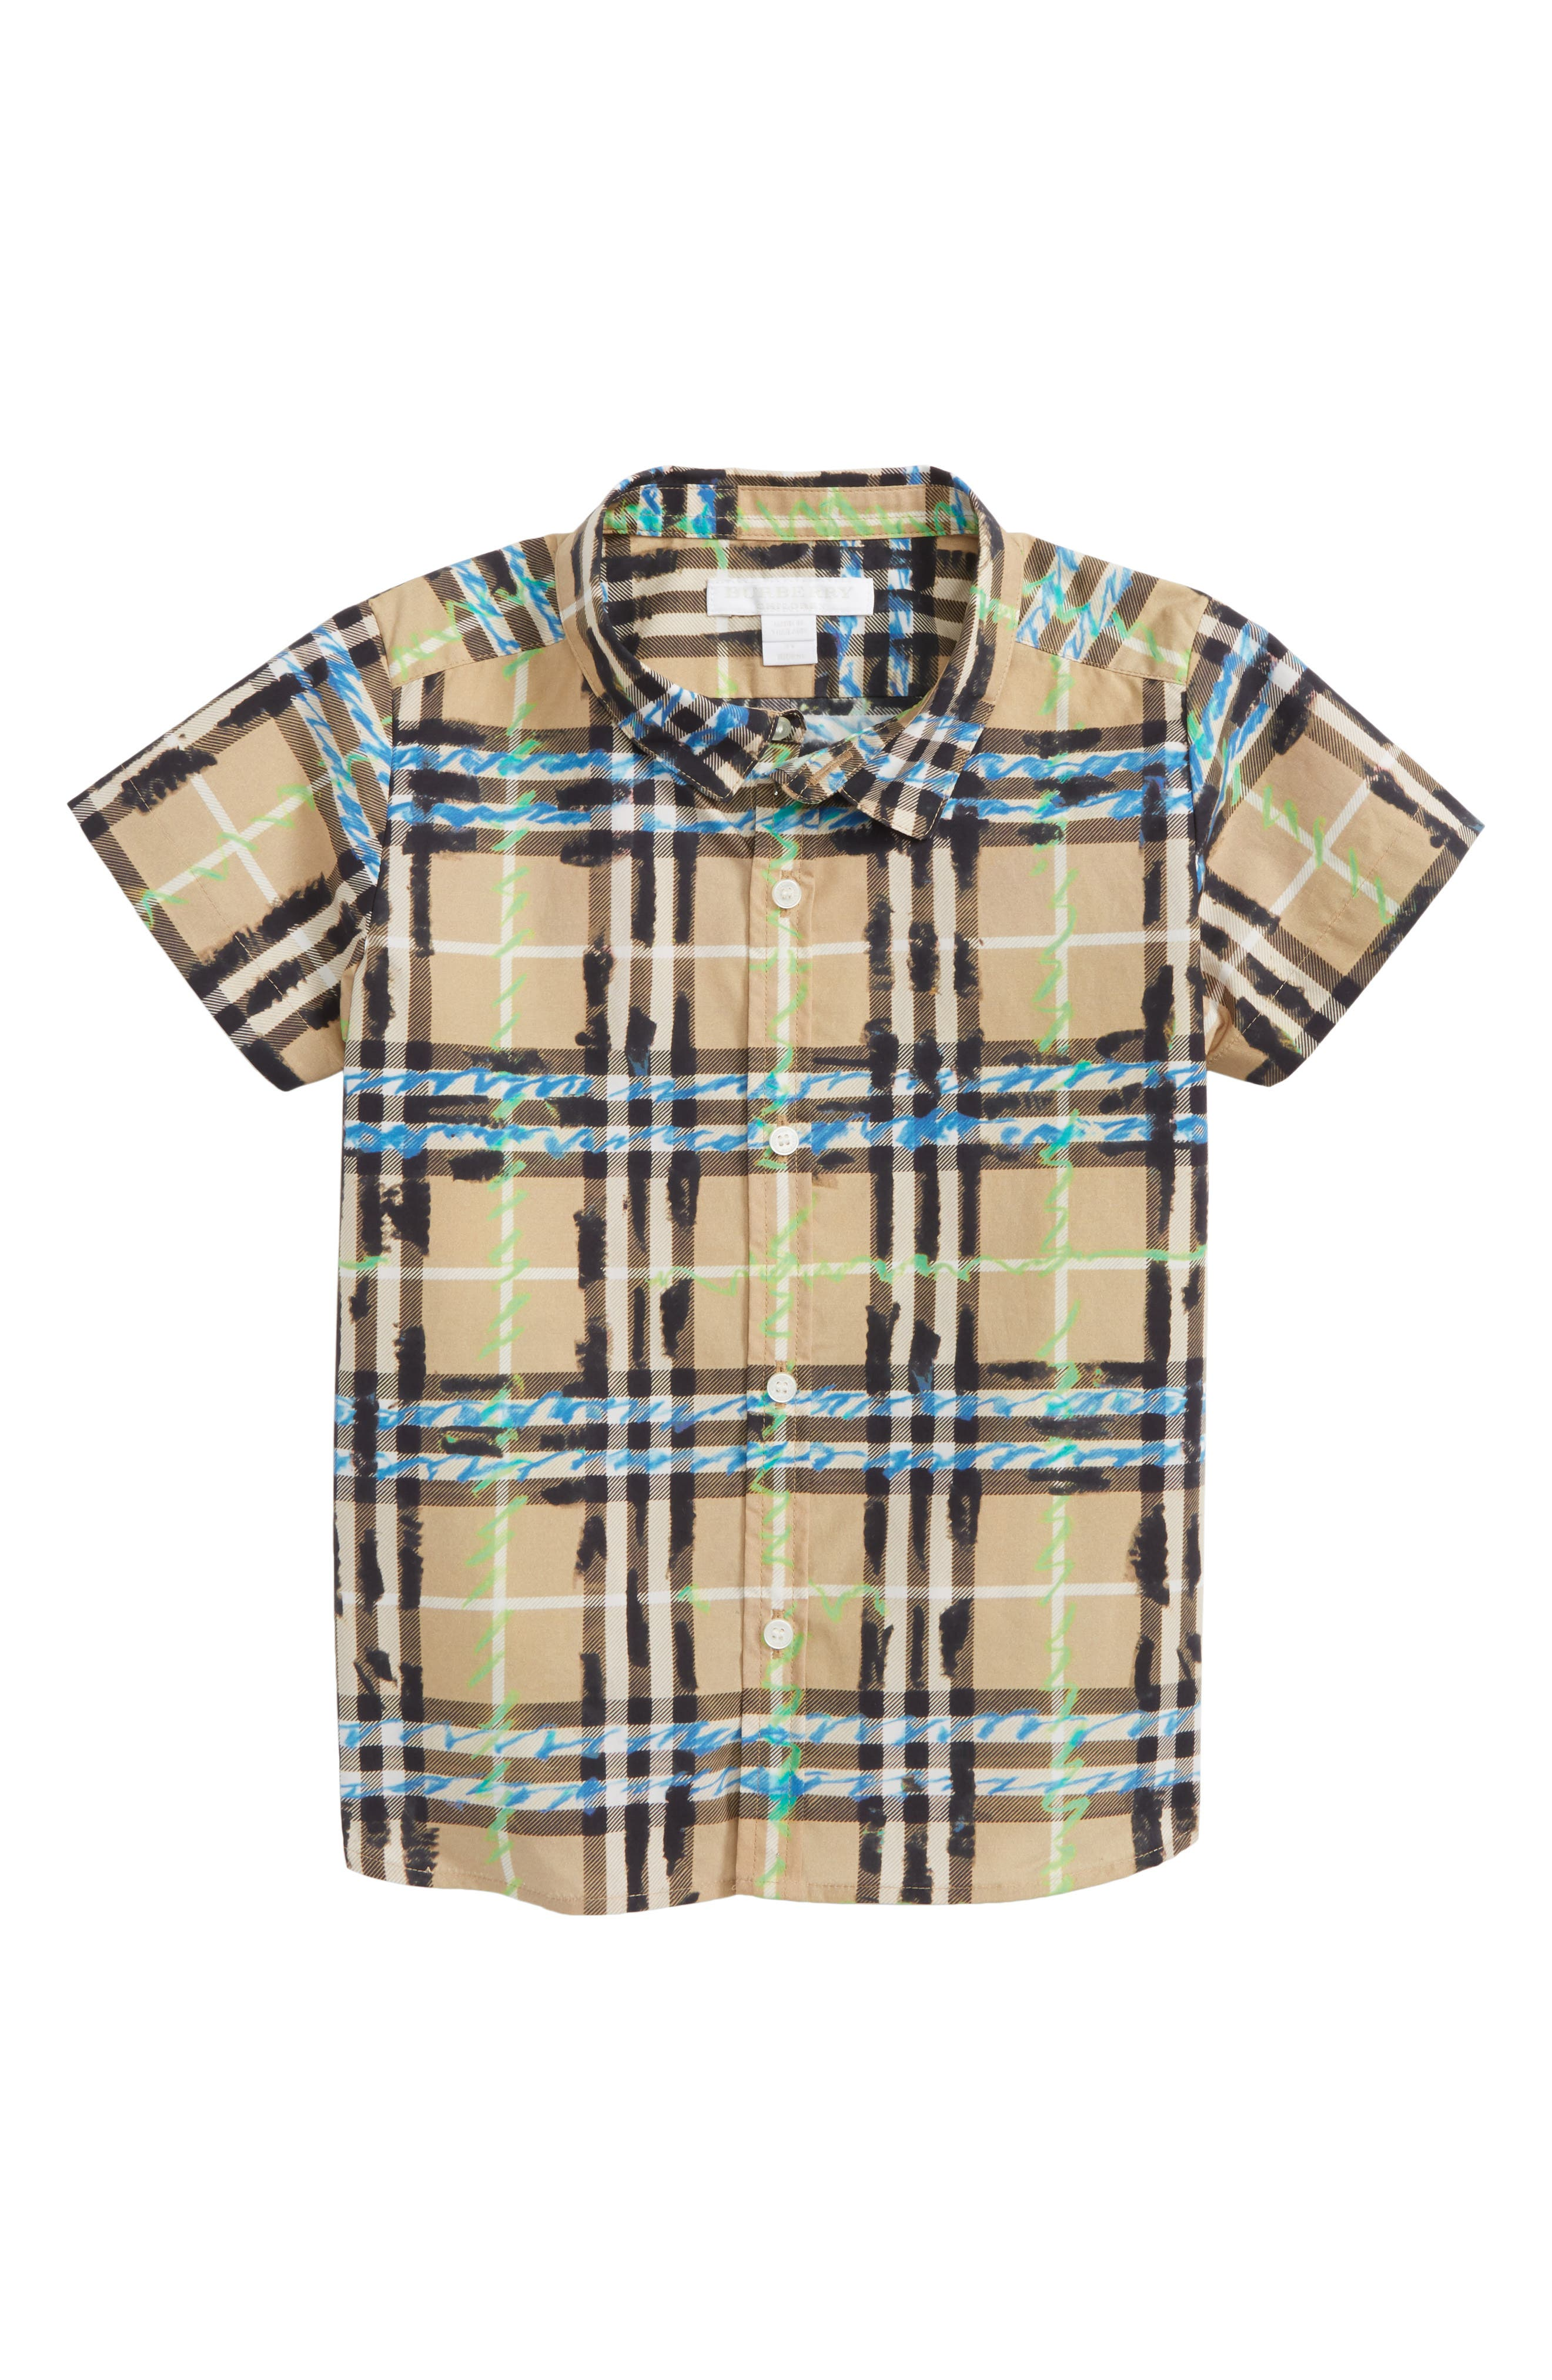 Alternate Image 1 Selected - Burberry Clarkey Scribble Plaid Woven Shirt (Toddler Boys)